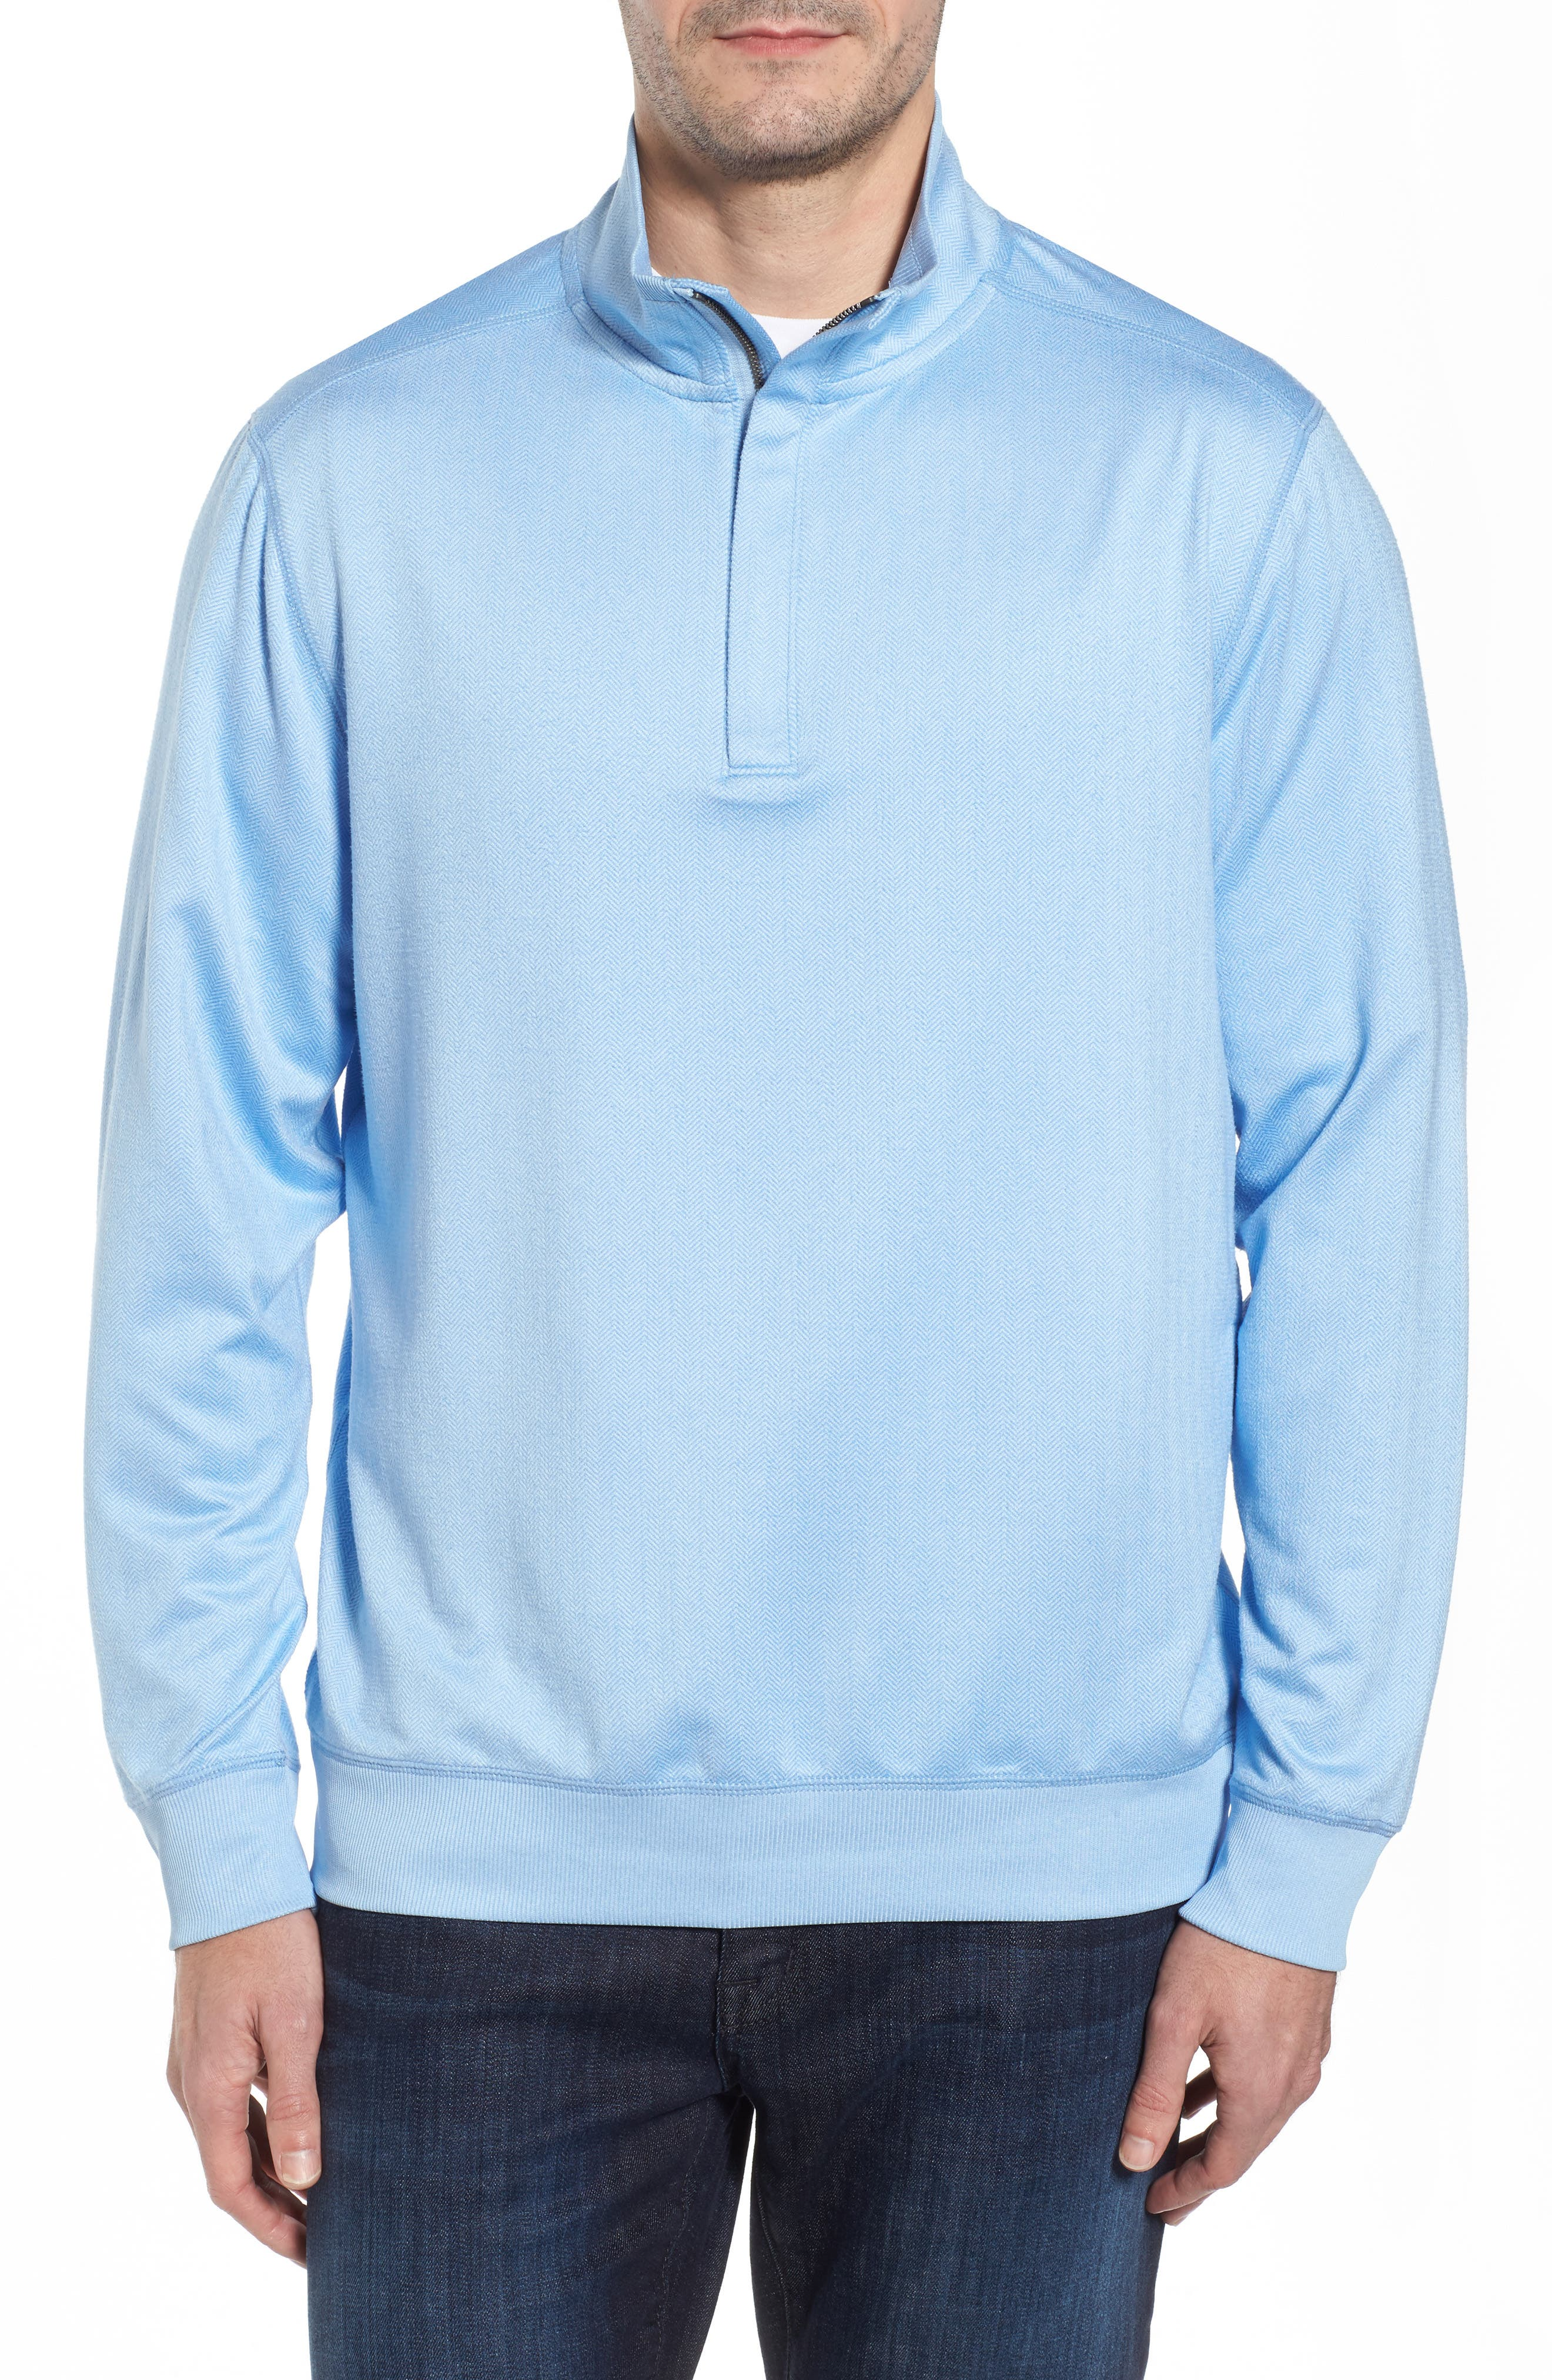 Alternate Image 1 Selected - Tommy Bahama Pro Formance Quarter Zip Sweater